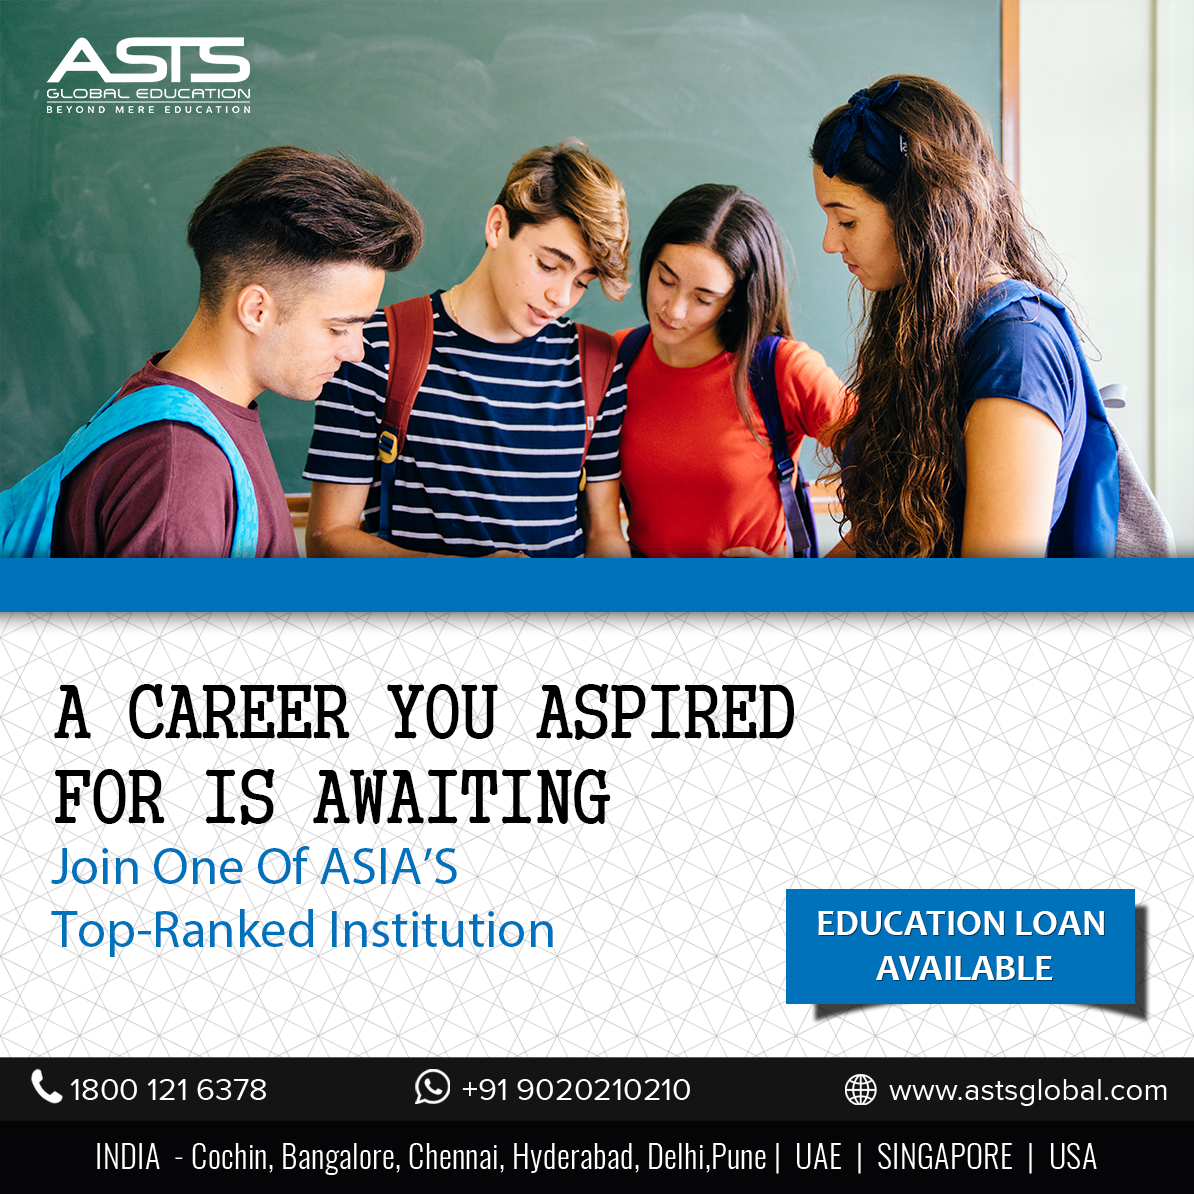 A Career You Aspired For Is Awaiting Join Asts Global Education Inc Today Contact Now At 91 9020 210 210 Kochi Global Education Education Engineering